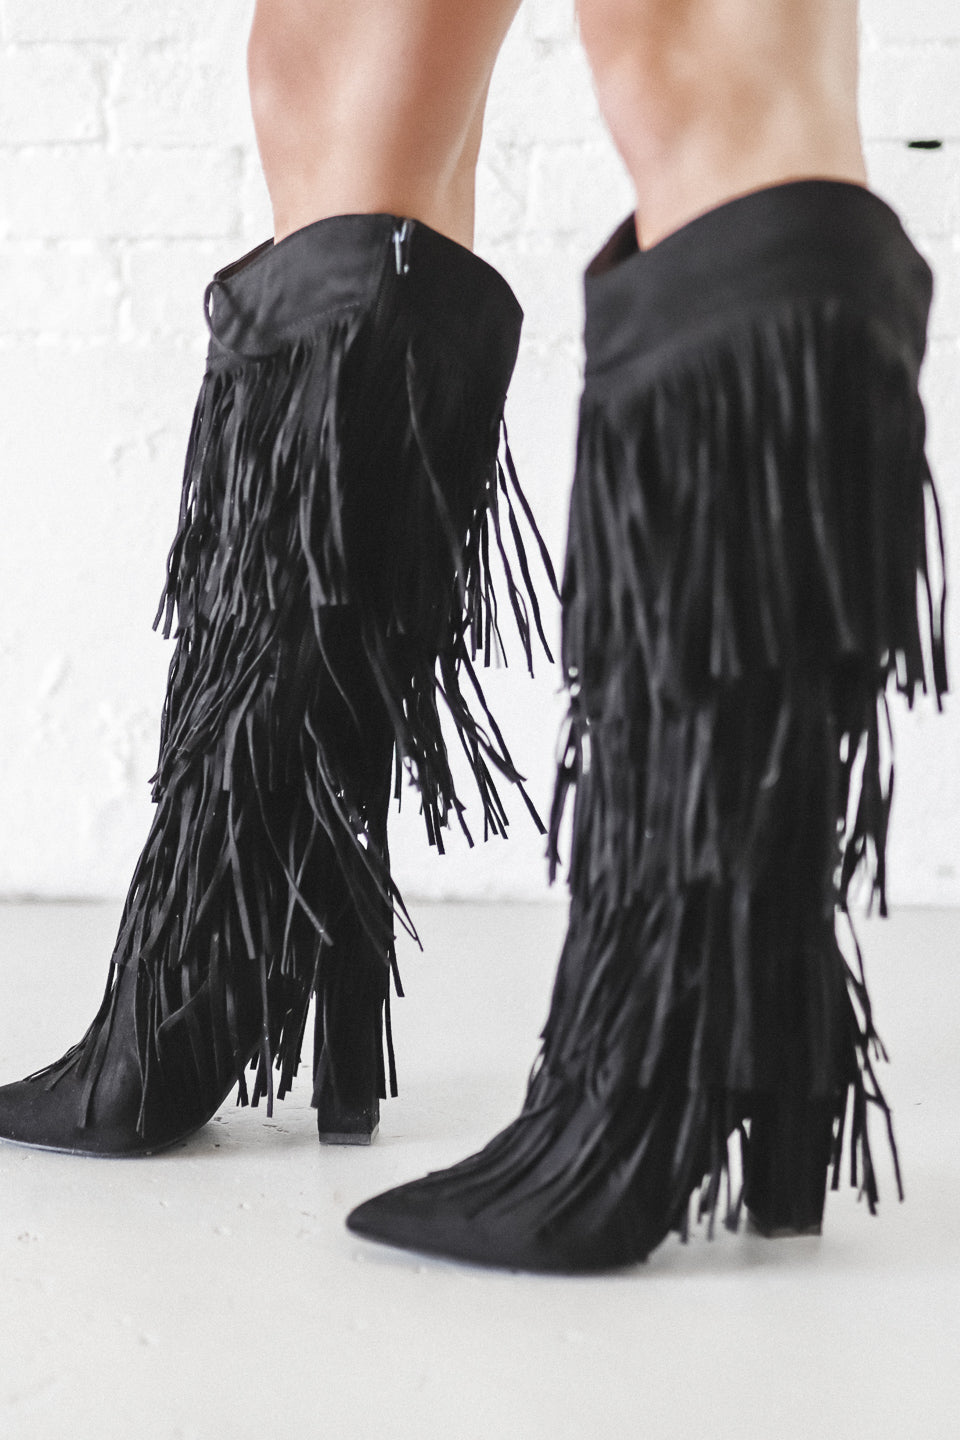 Kick The Dust Up Suede All Over Fringe Heel Boot